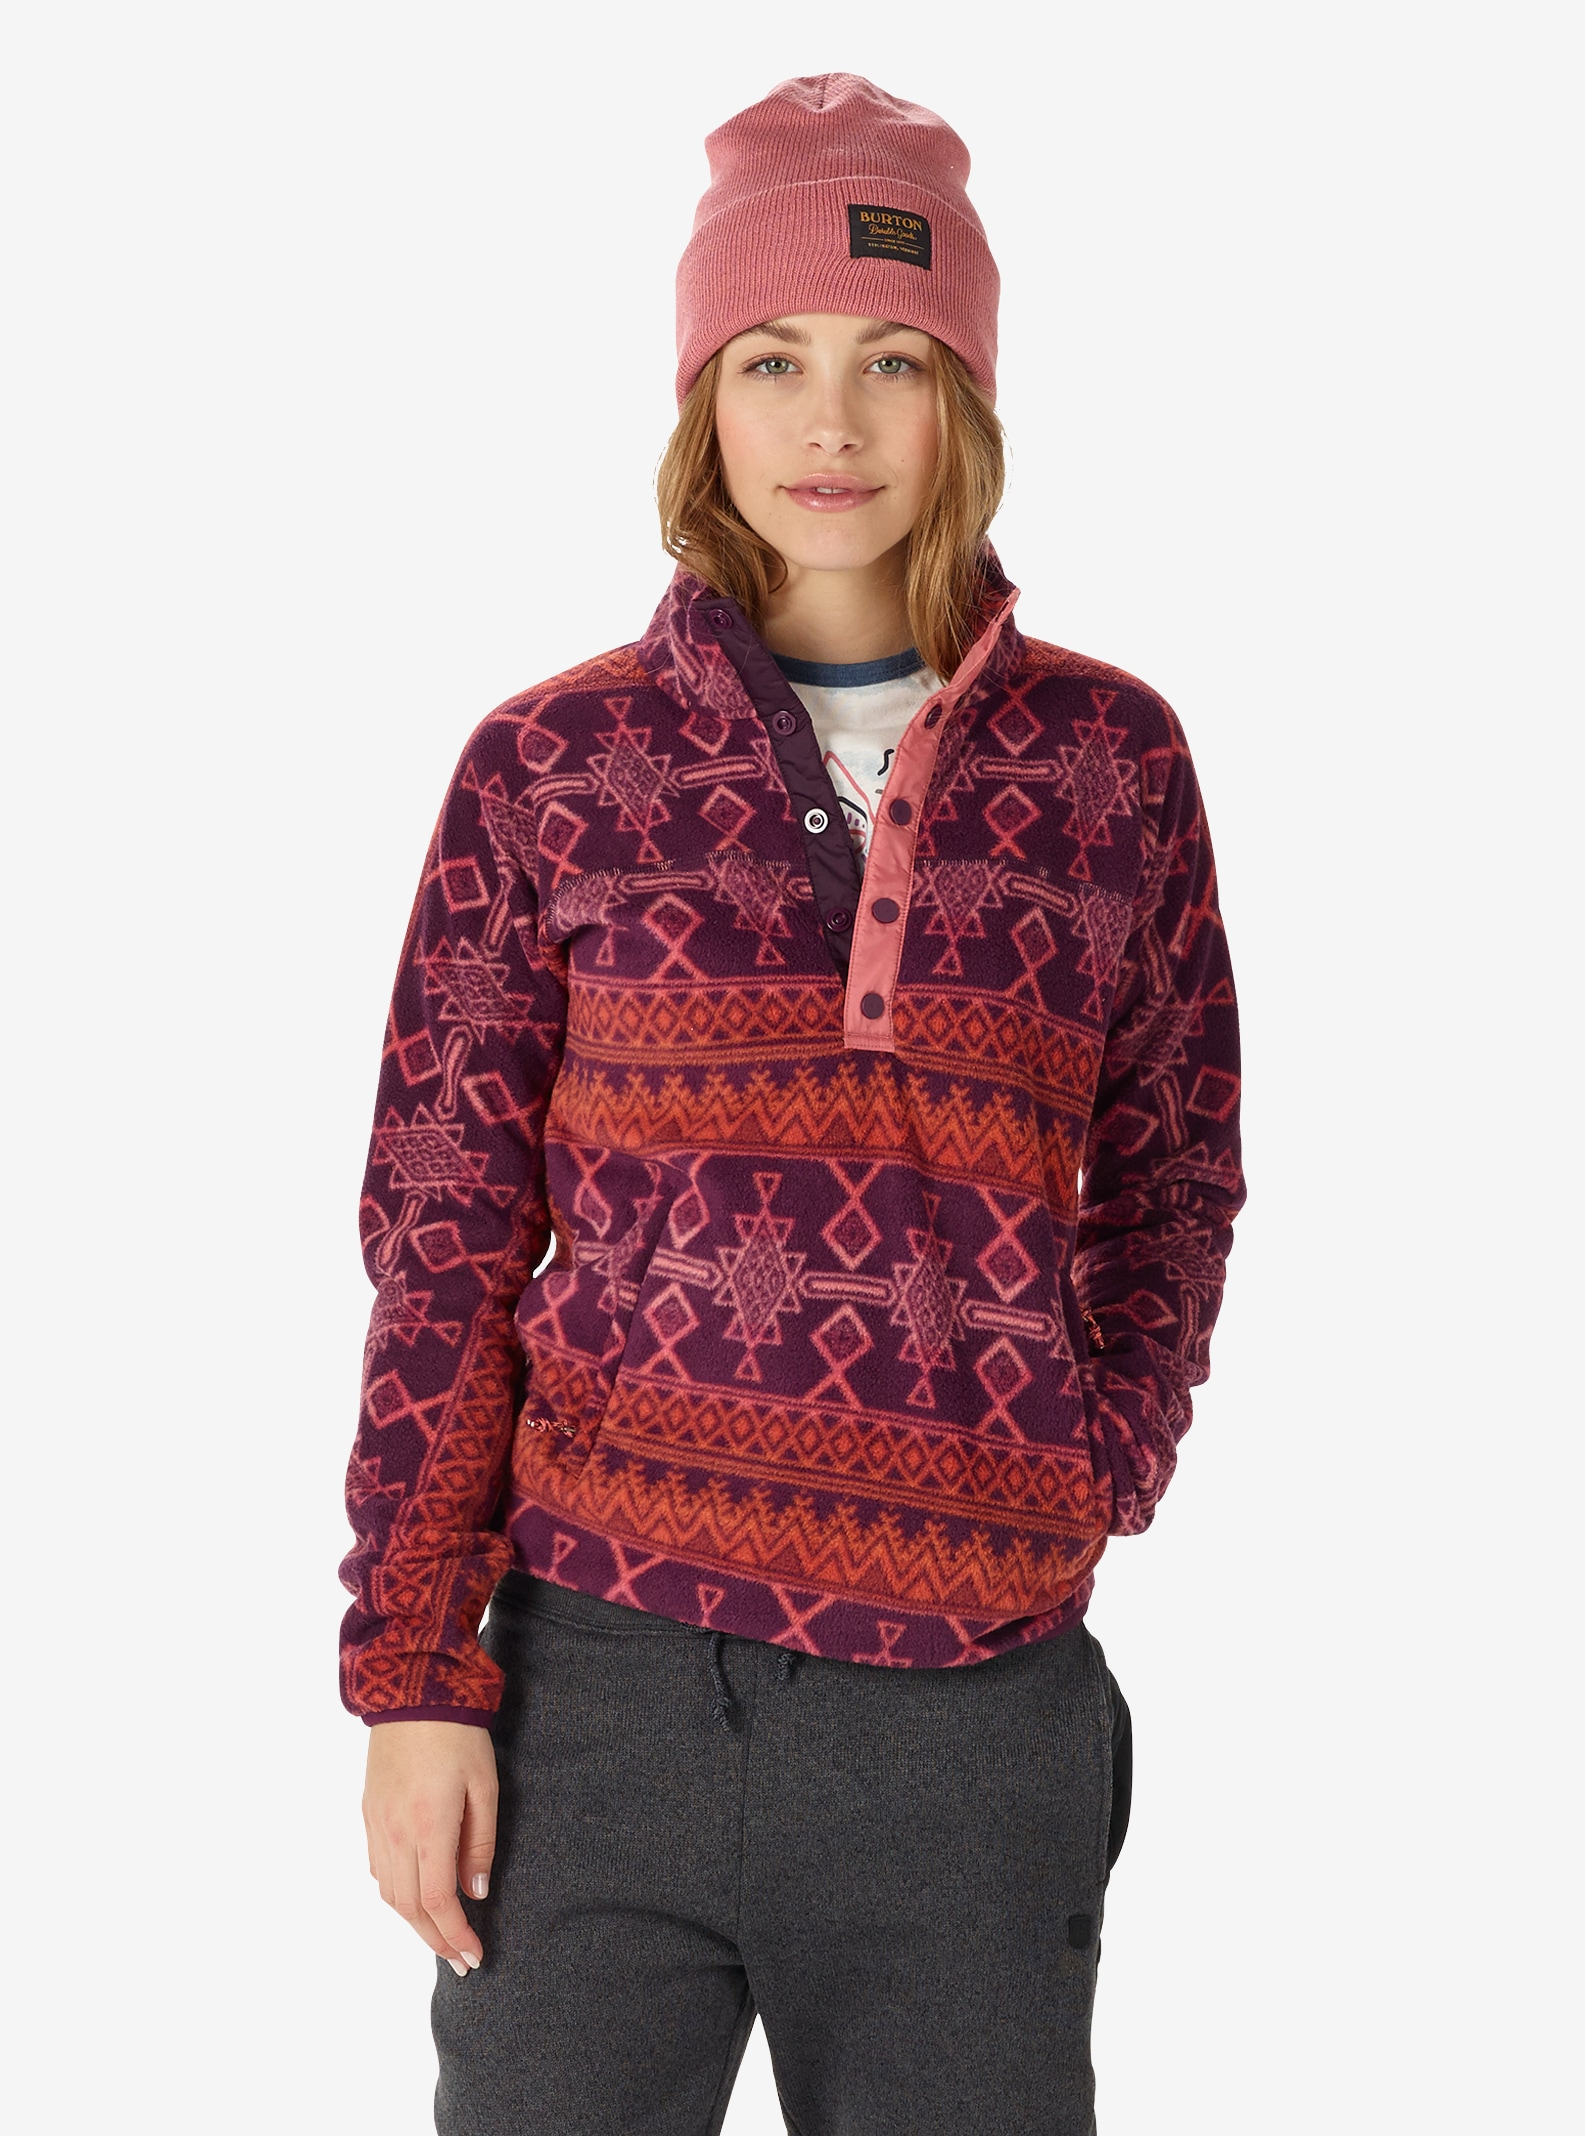 Women's Burton Anouk Fleece Anorak shown in Starling Mojave